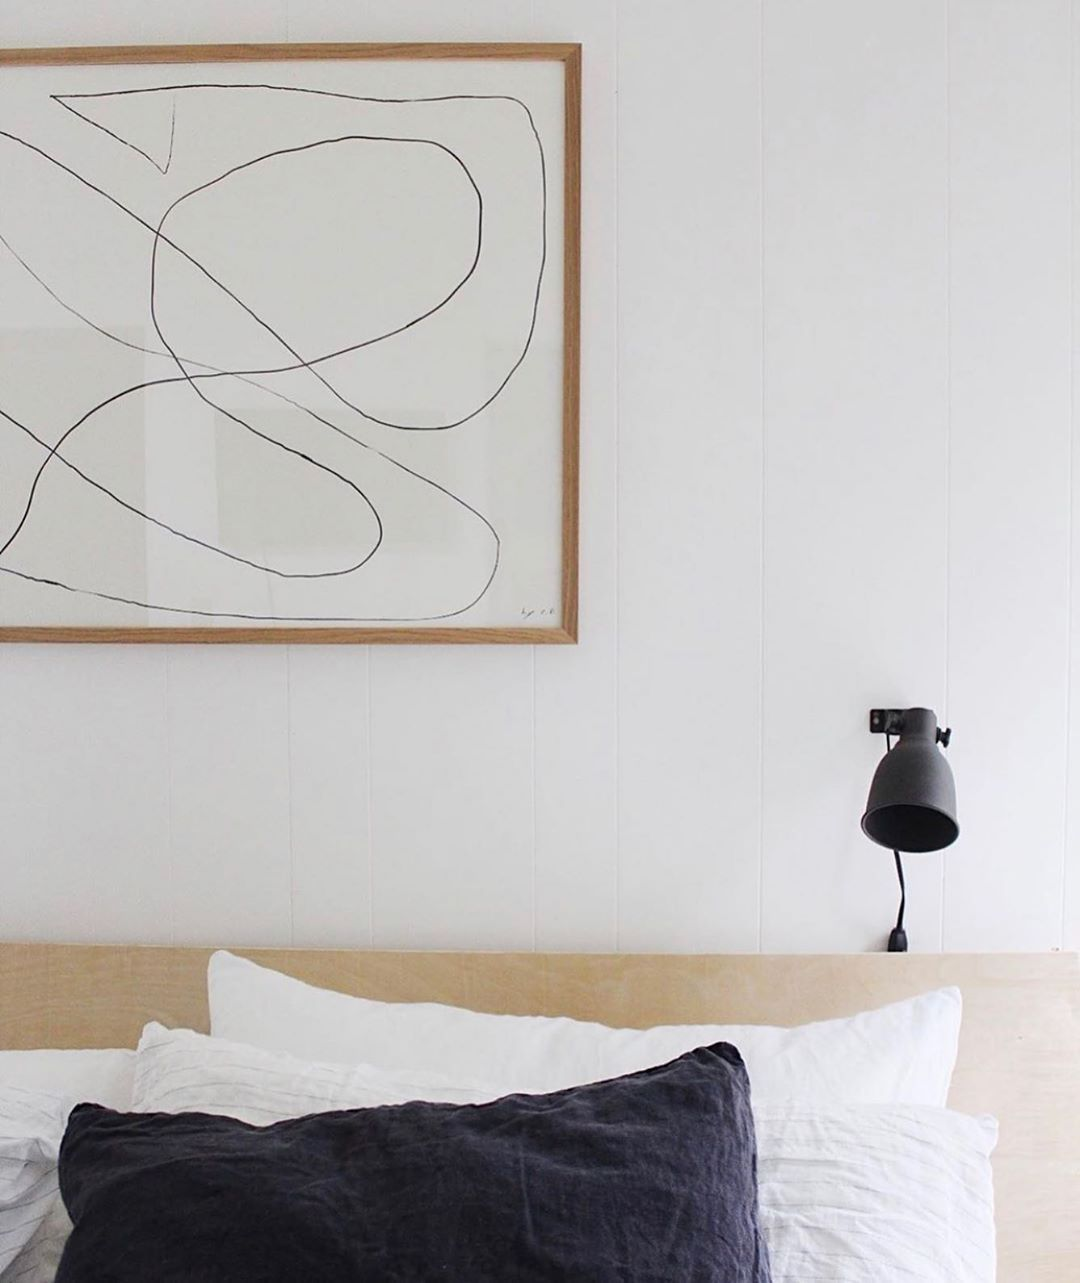 Home Decor Apartment Clean simplicity. Featuring a classic Bycdesign studio print. Captured by @mysoulmateplace. . Abstract print available from Copenhagen based The Poster Club. Worldwide shipping! Minimal Scandinavian bedroom in neutral colours. #art #artprint #tpc #theposterclub #interiordesign #nordicdecor #homestyling #bedroomdecor @rivercabaan photo by @kassalaholdsclaw.Home Decor Apartment  Clean simplicity. Featuring a classic Bycdesign studio print. Captured by mysoulmateplace. . Abstra